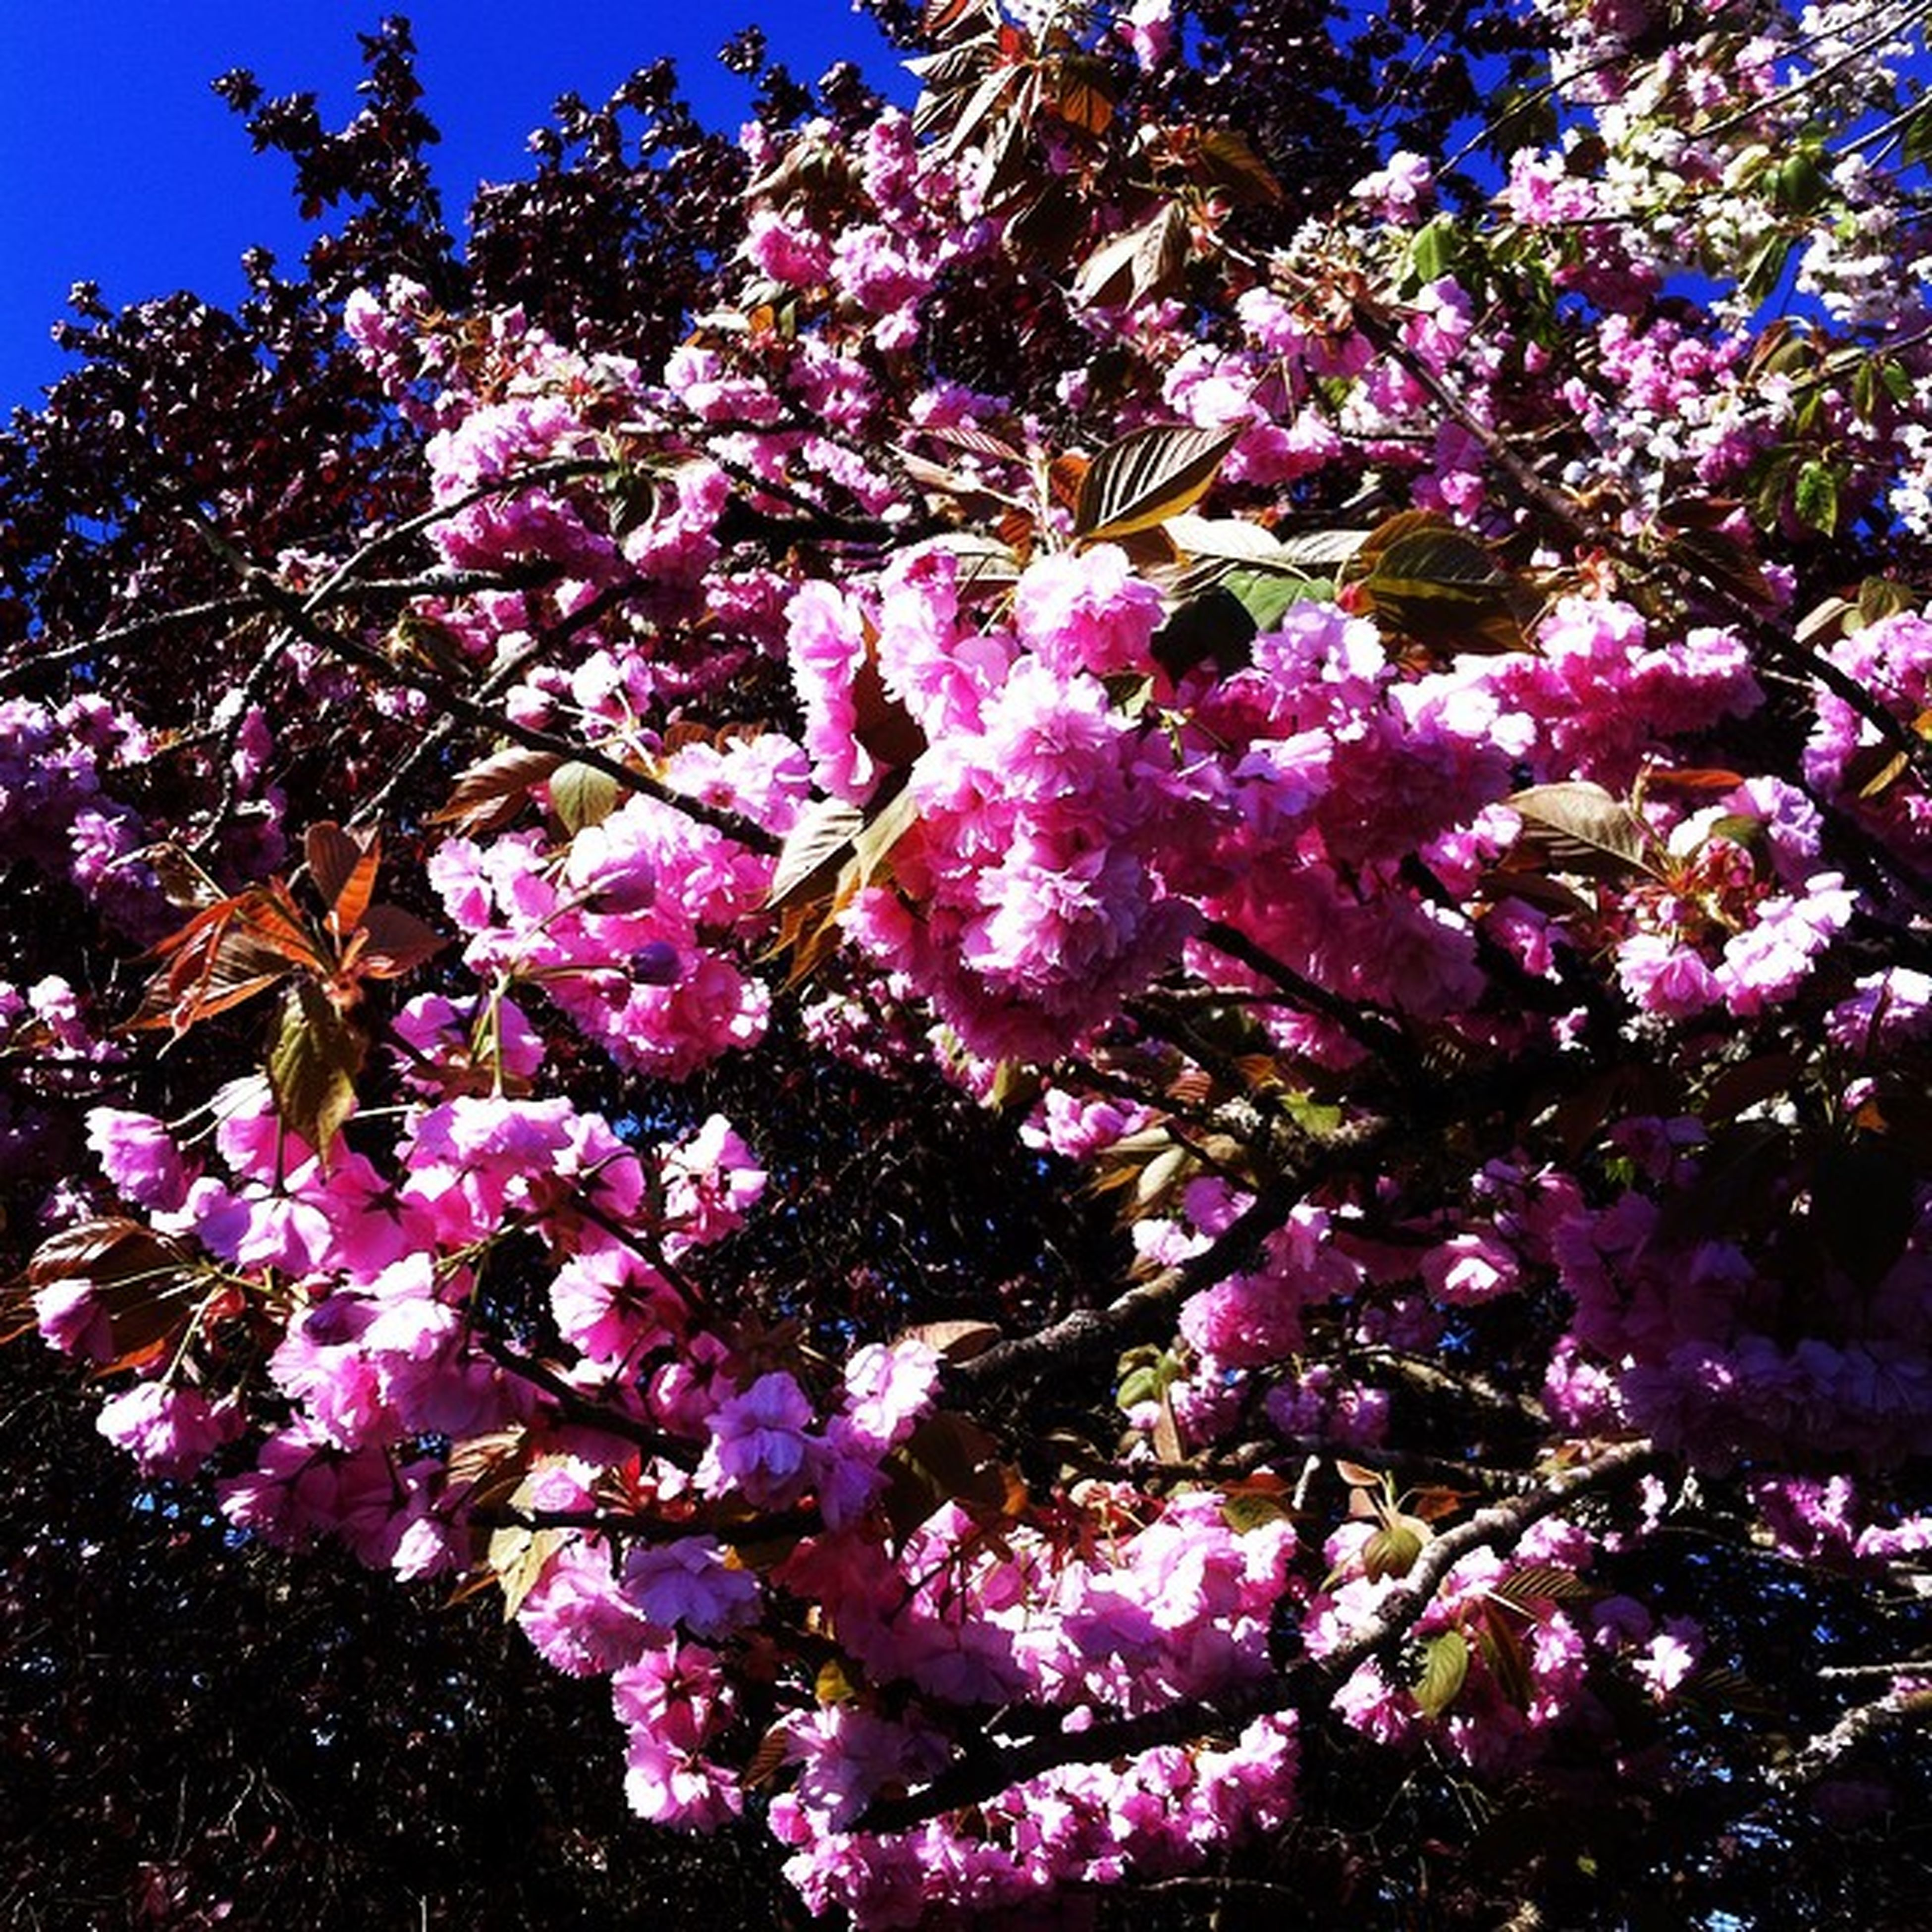 flower, growth, freshness, tree, beauty in nature, fragility, nature, blossom, low angle view, blooming, in bloom, pink color, branch, purple, petal, springtime, blue, cherry blossom, sunlight, clear sky